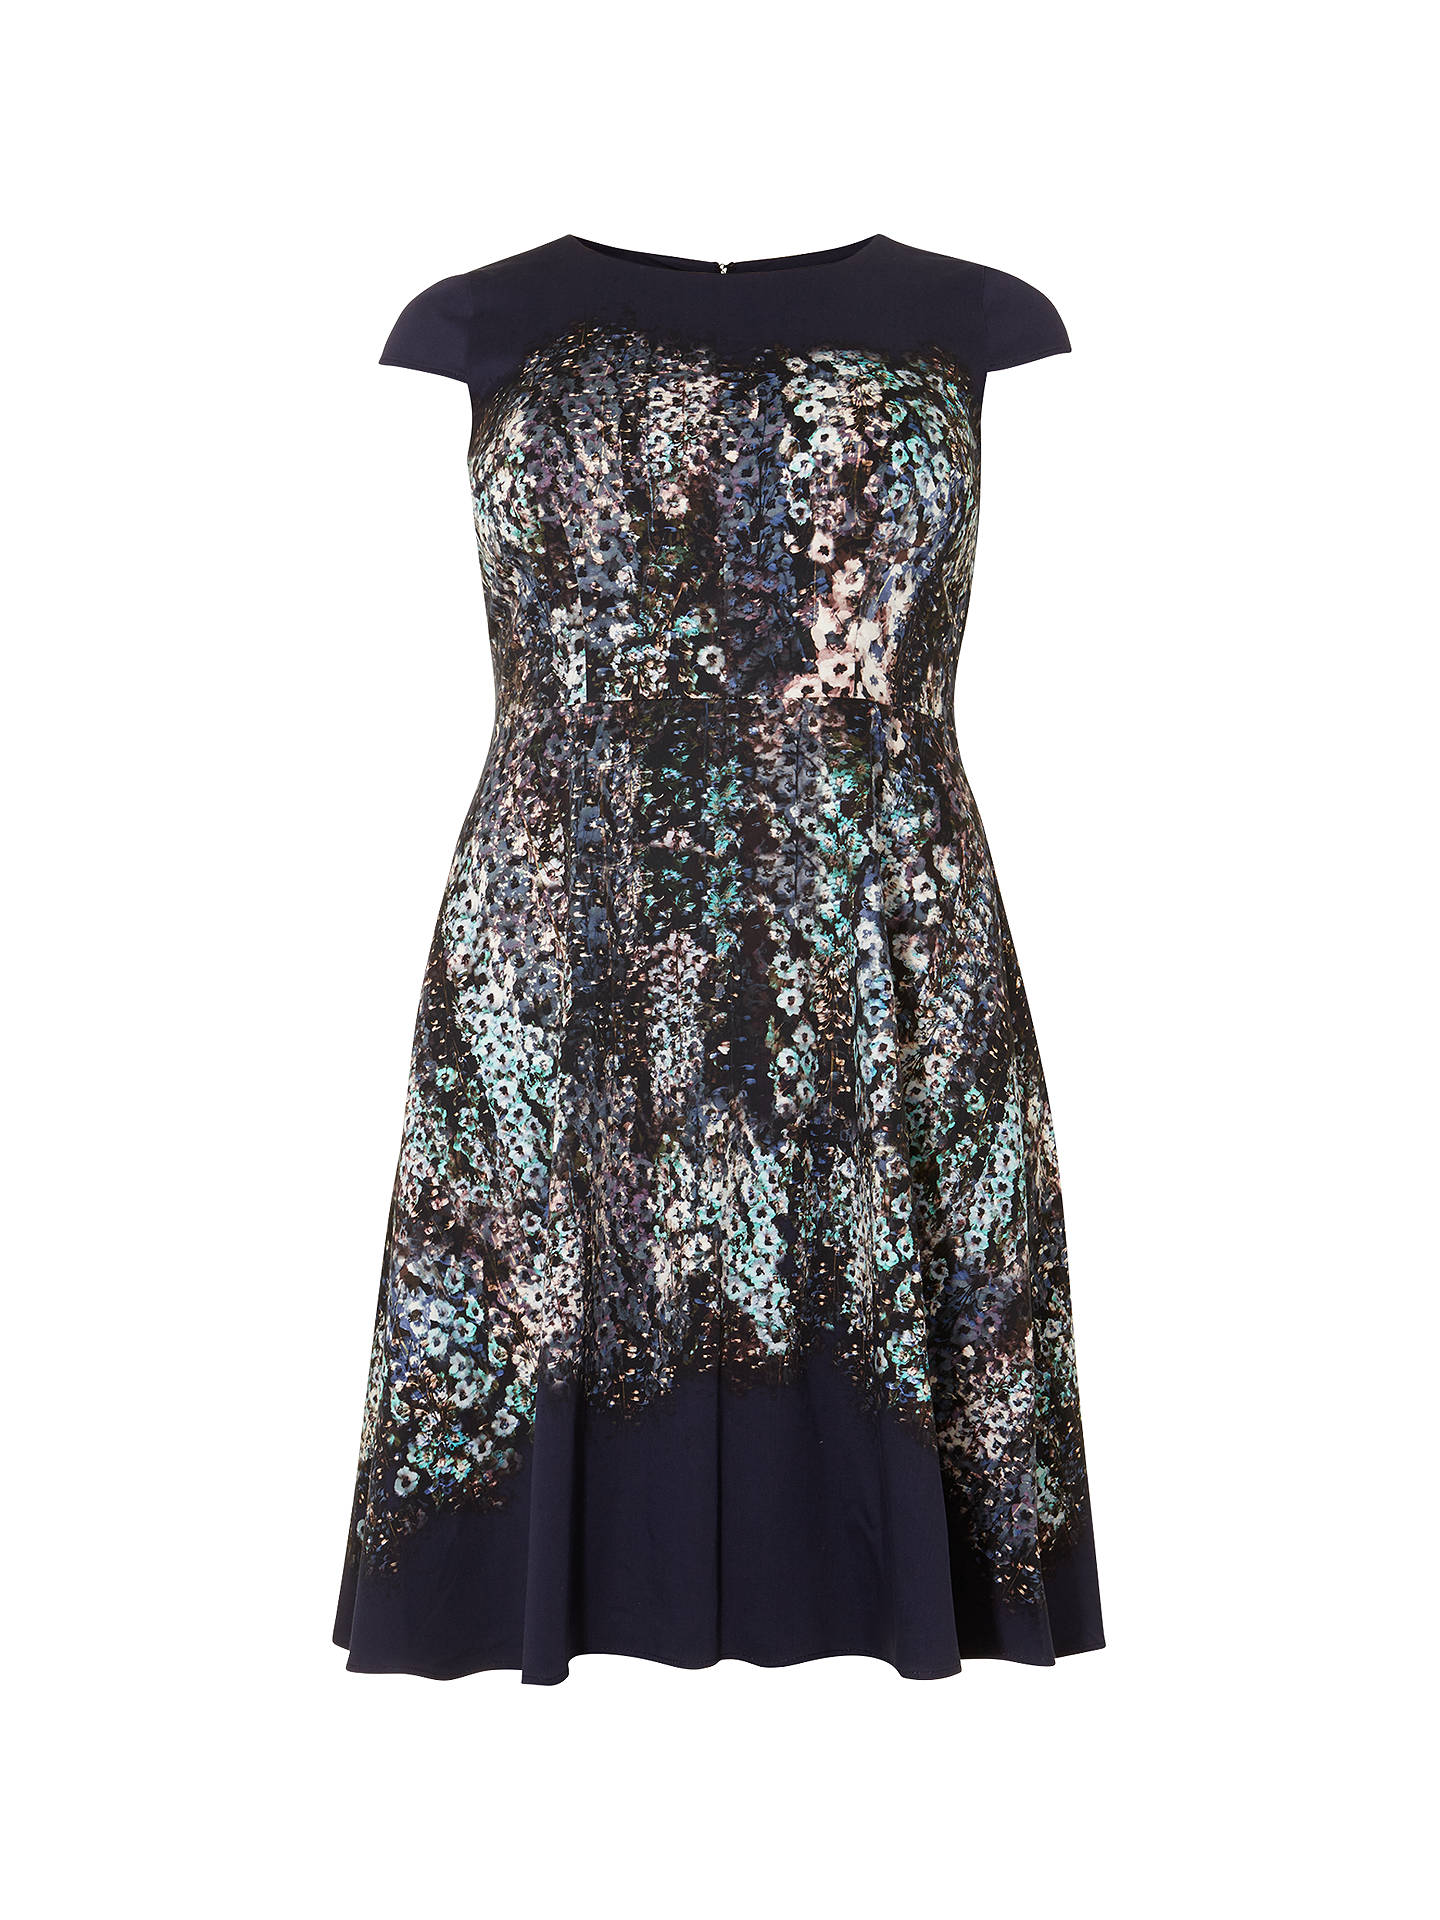 BuyStudio 8 Marissa Floral Jersey Dress, Blue, 12 Online at johnlewis.com